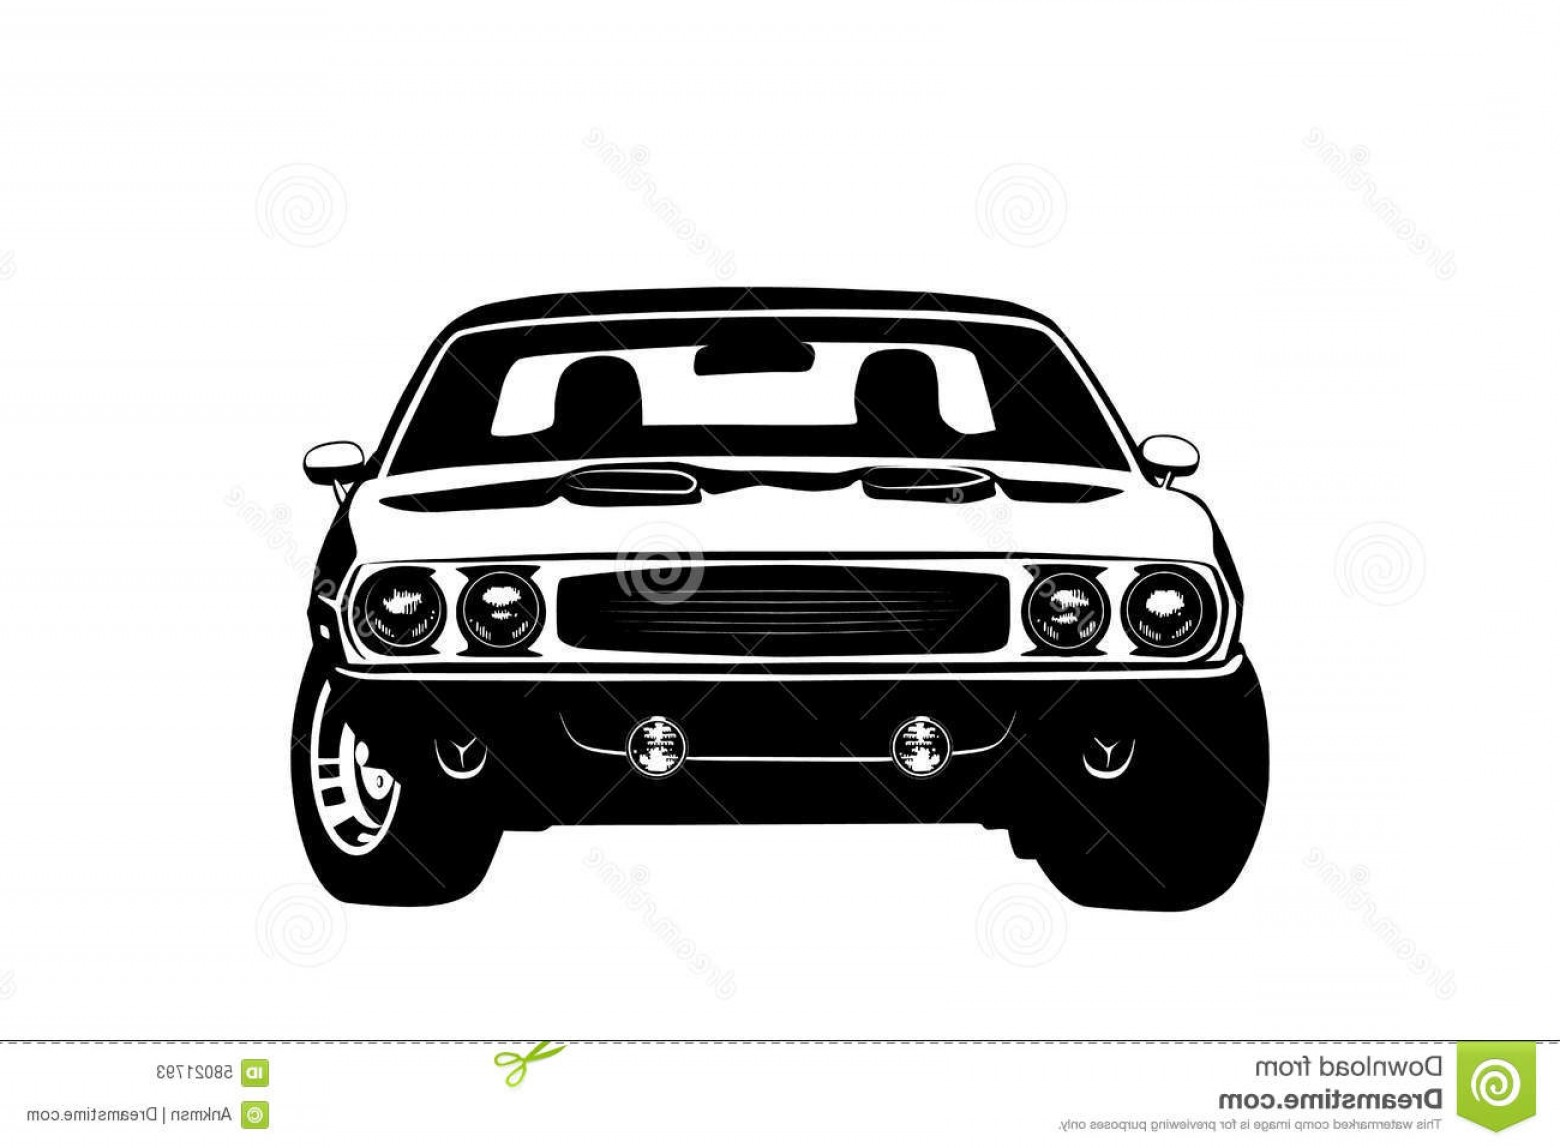 Muscle Car Silhouette Vector High Res: Stock Illustration Design Sports Car Muscle Car Stock Vector Illustration Three Sportcar Isolated White Background Image